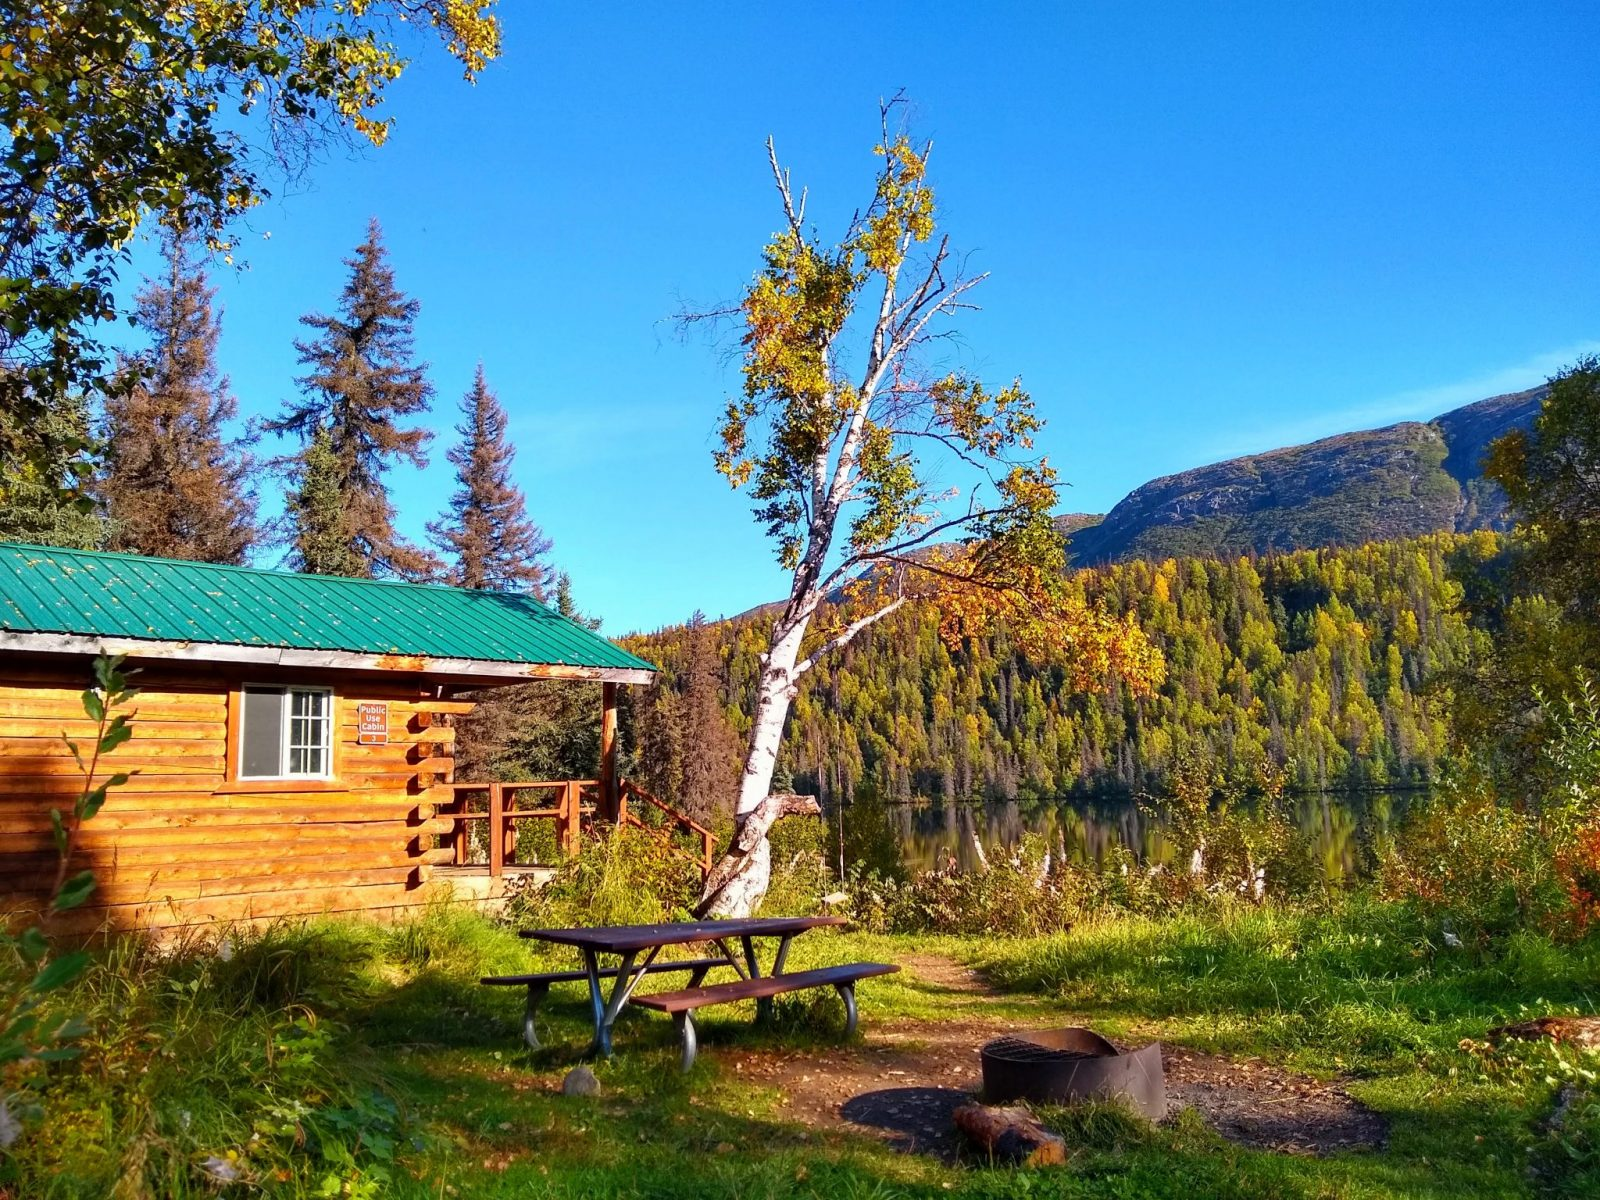 the side of a wooden cabin next to a lake with forest around it. There is a picnic table and a fire pit in the foreground. A cabin rental is a great way to camp without having to fly with camping gear